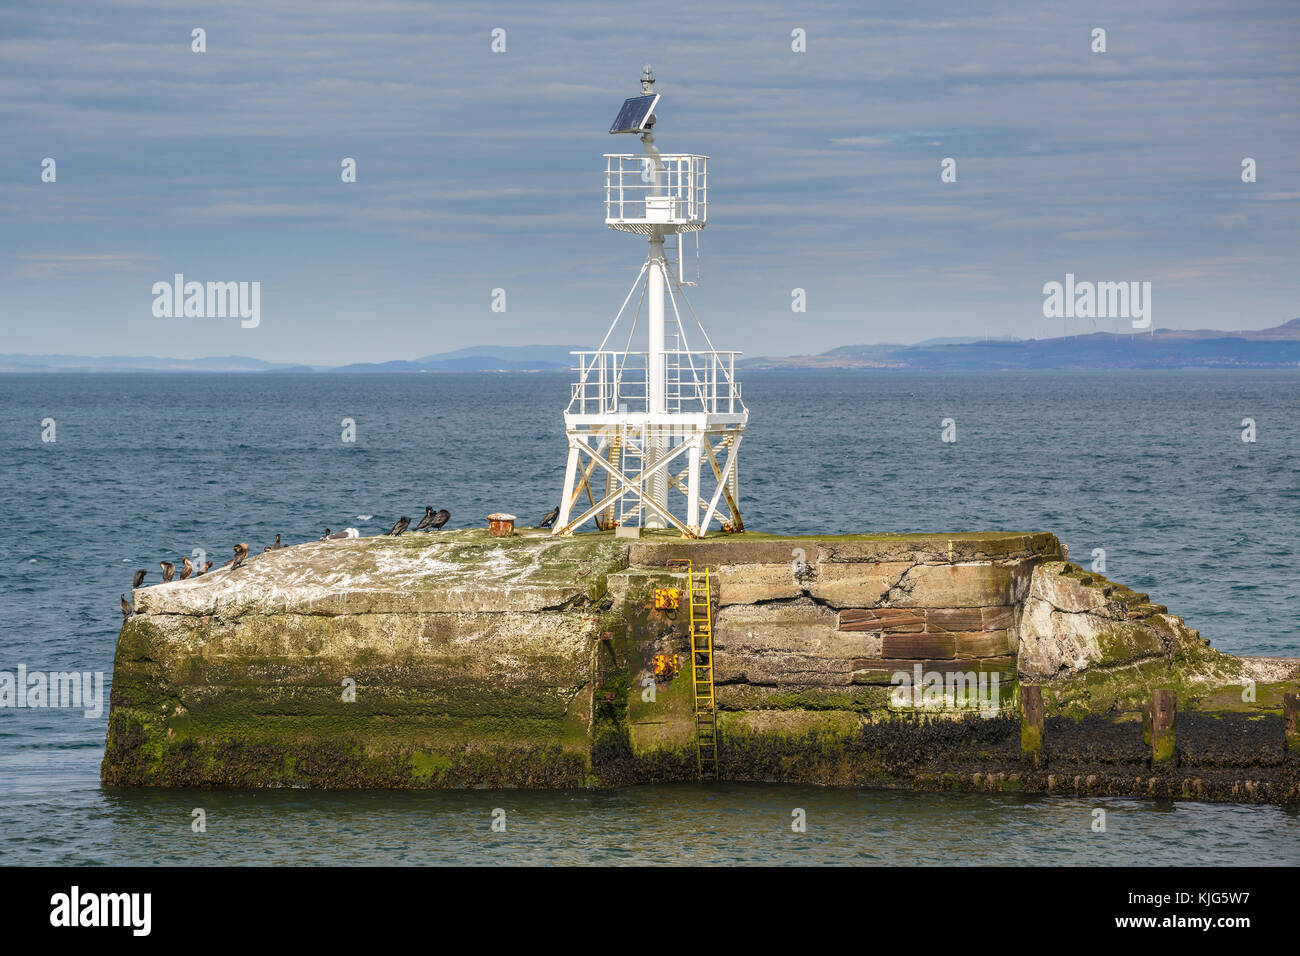 Solar pwered light station at the entrance to Ayr Harbour, Scotland, UK. - Stock Image